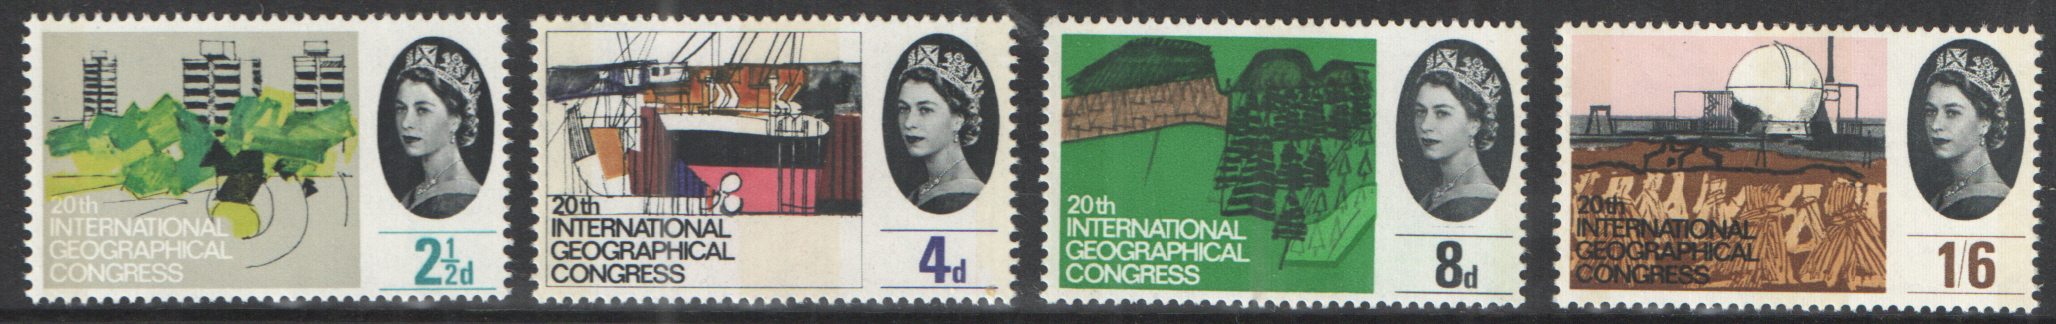 SG651p / 654p 1964 Geographical Congress (Phosphor) unmounted mint set of 4